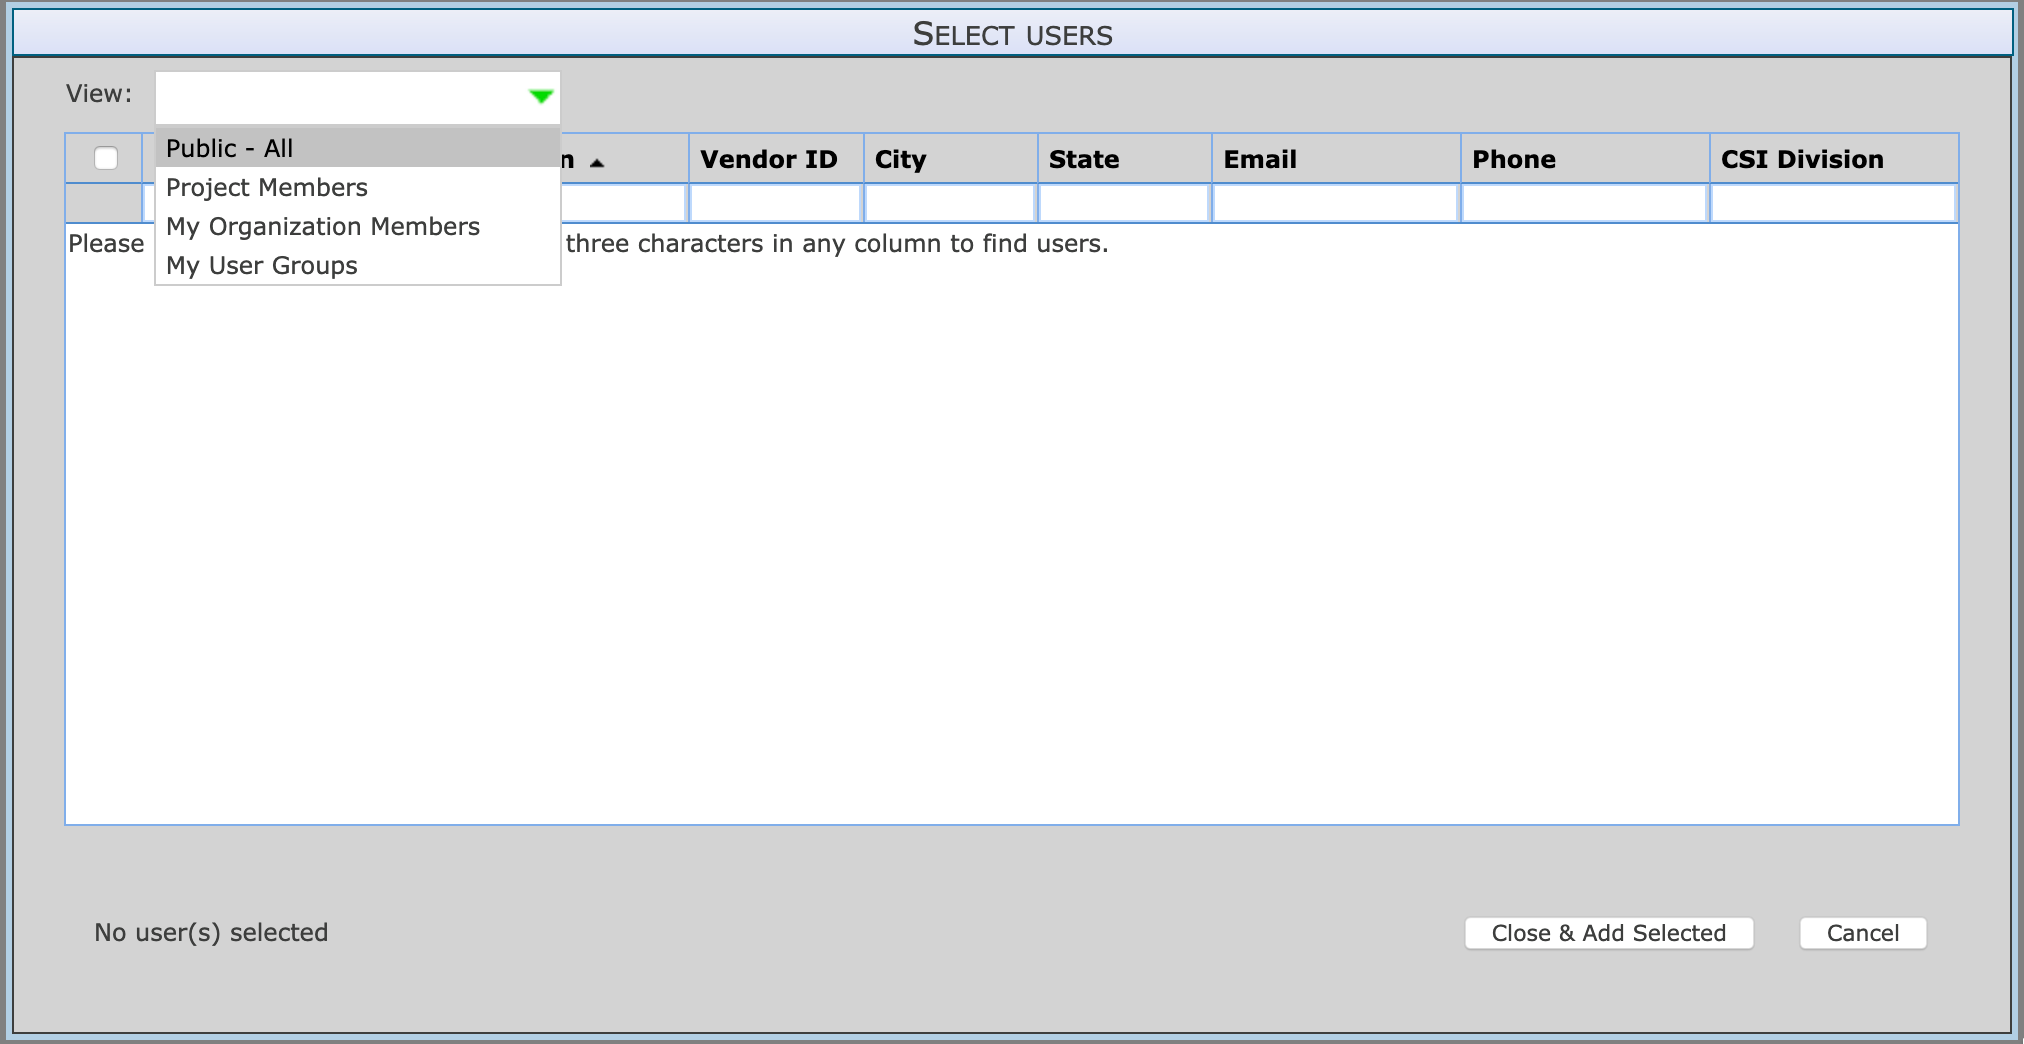 View:  Public - All  Project Members  My Organization Members  Please  My User Groups  No user(s) selected  SELECT USERS  Vendor ID City  State  three characters in any column to find users.  Email  Phone  CSI Division  Close & Add Selected  Cancel